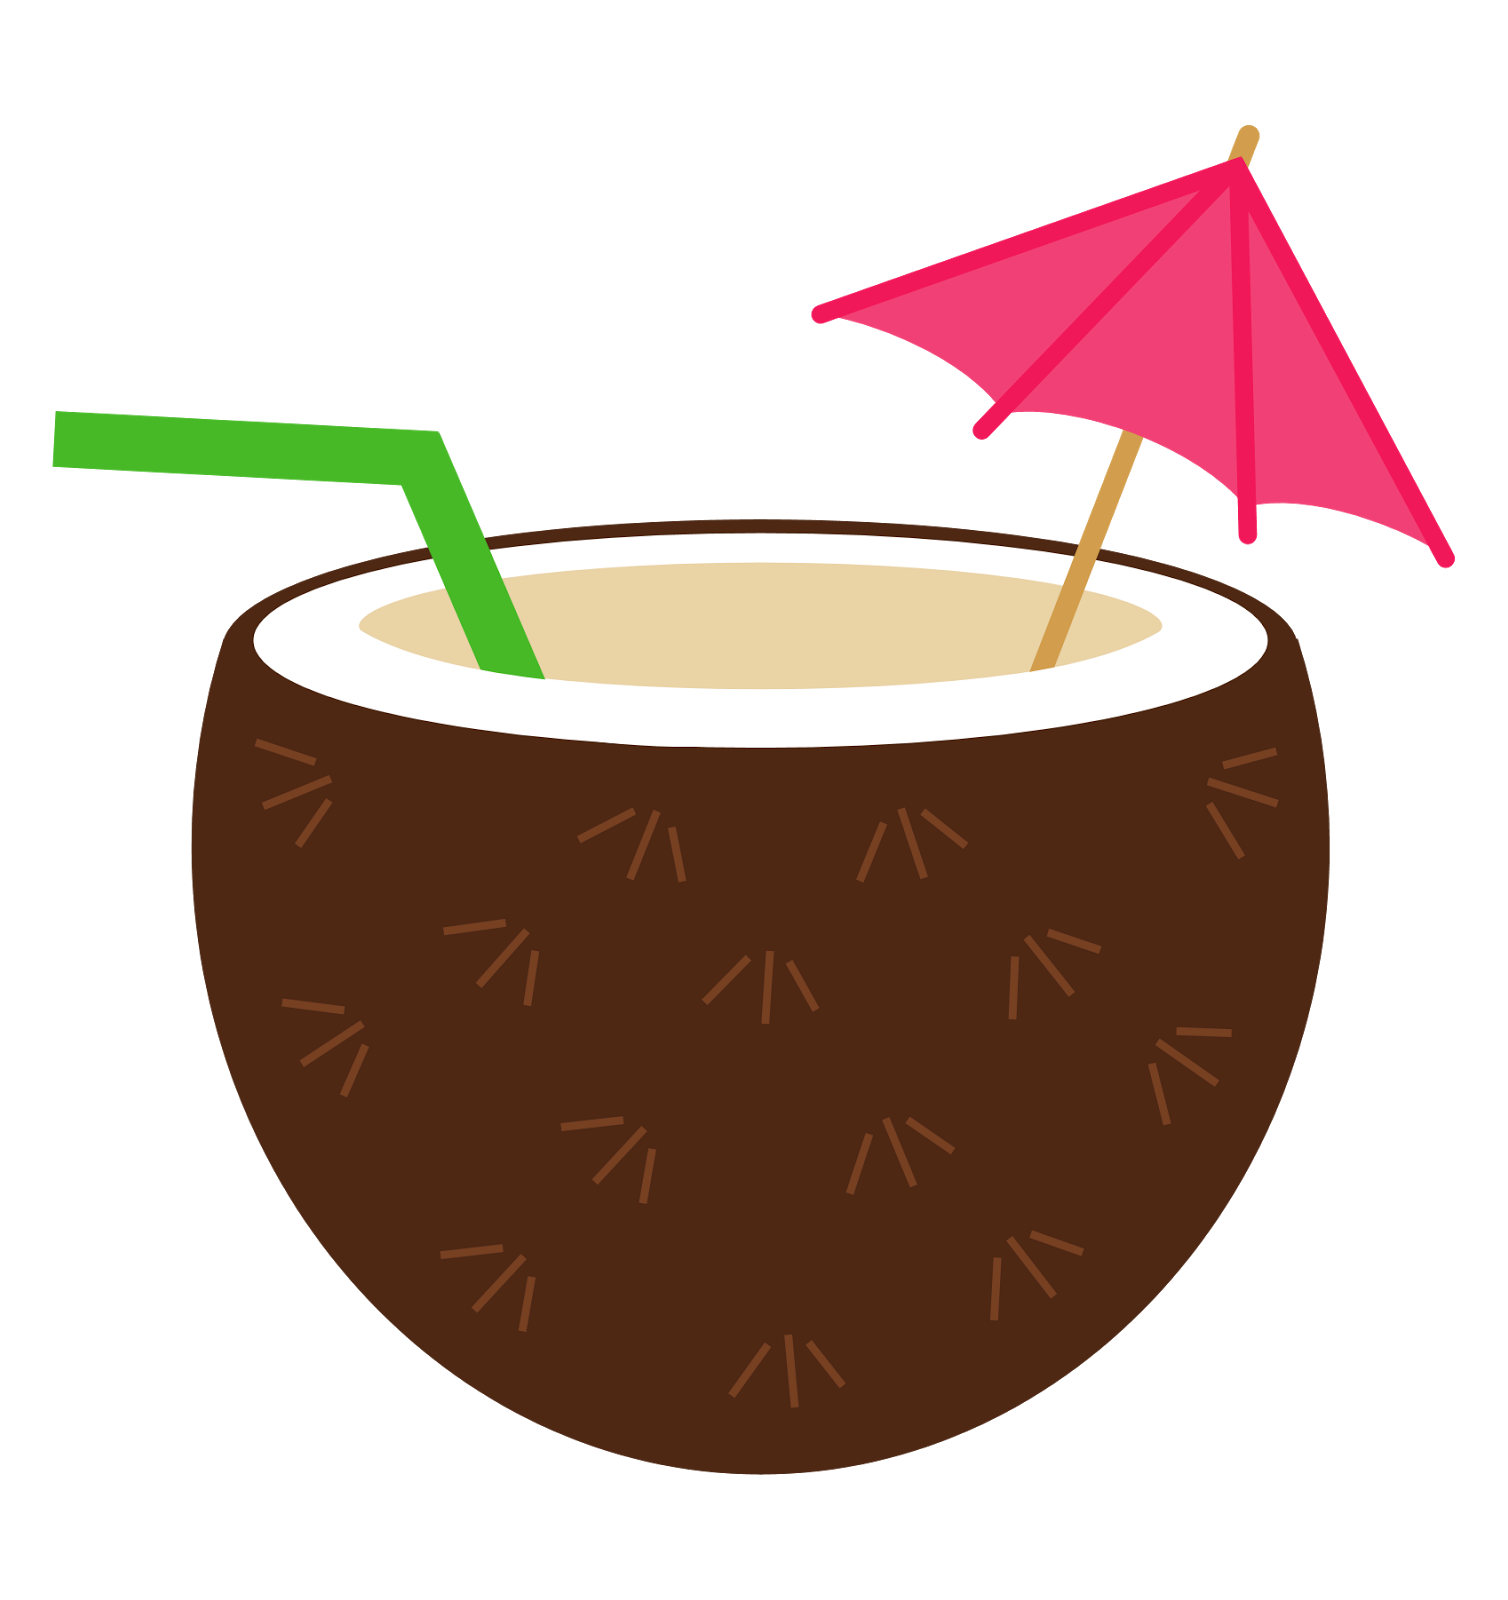 Tiki clipart tiki drink. Collection of free cocoanut